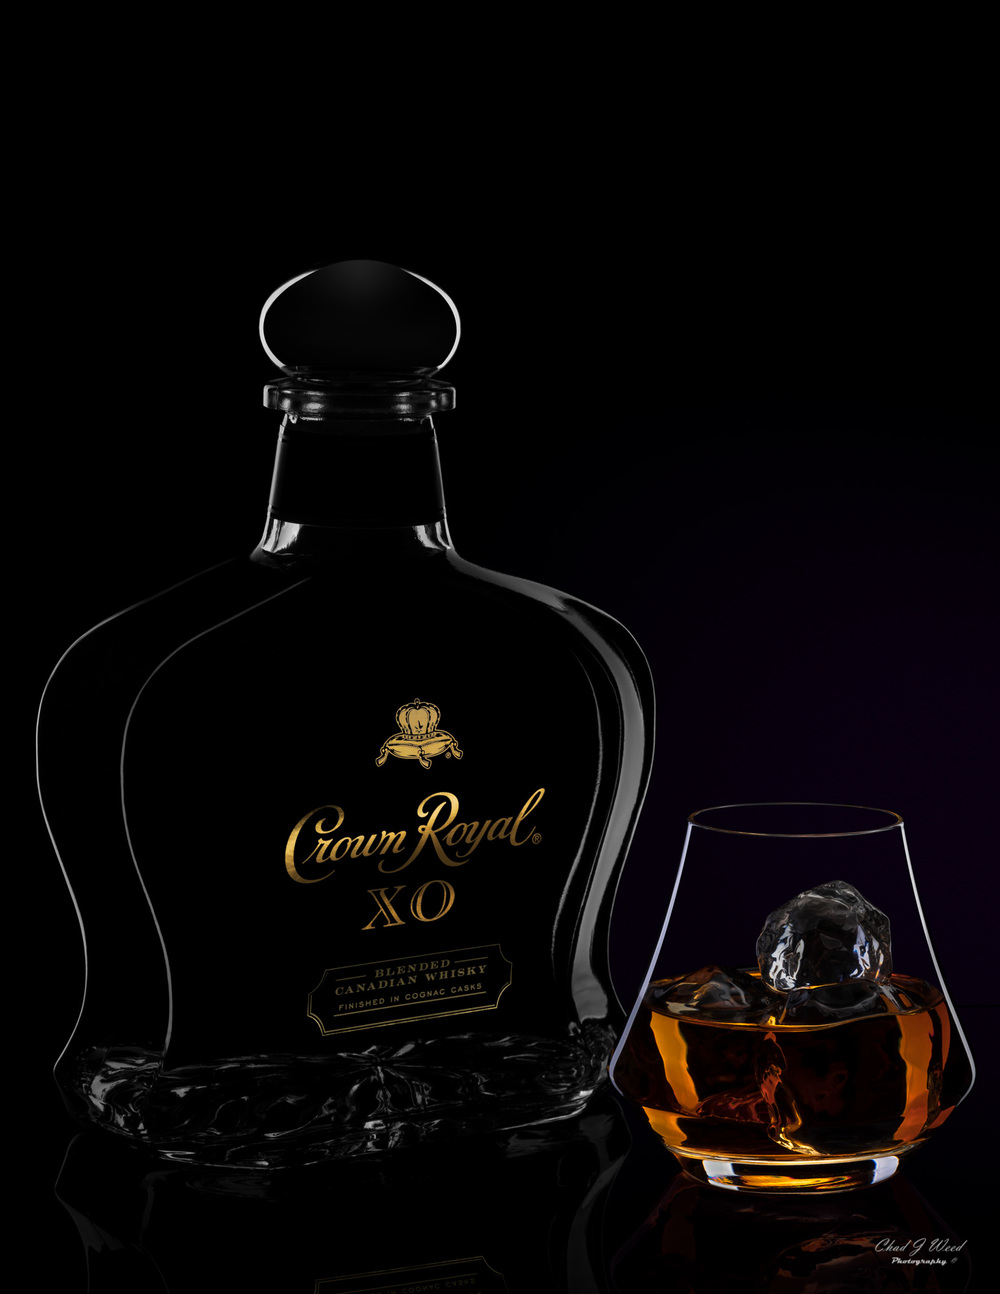 Crown Royal XO Whisky by Arizona Commercial Beverage Photographer Chad J Weed